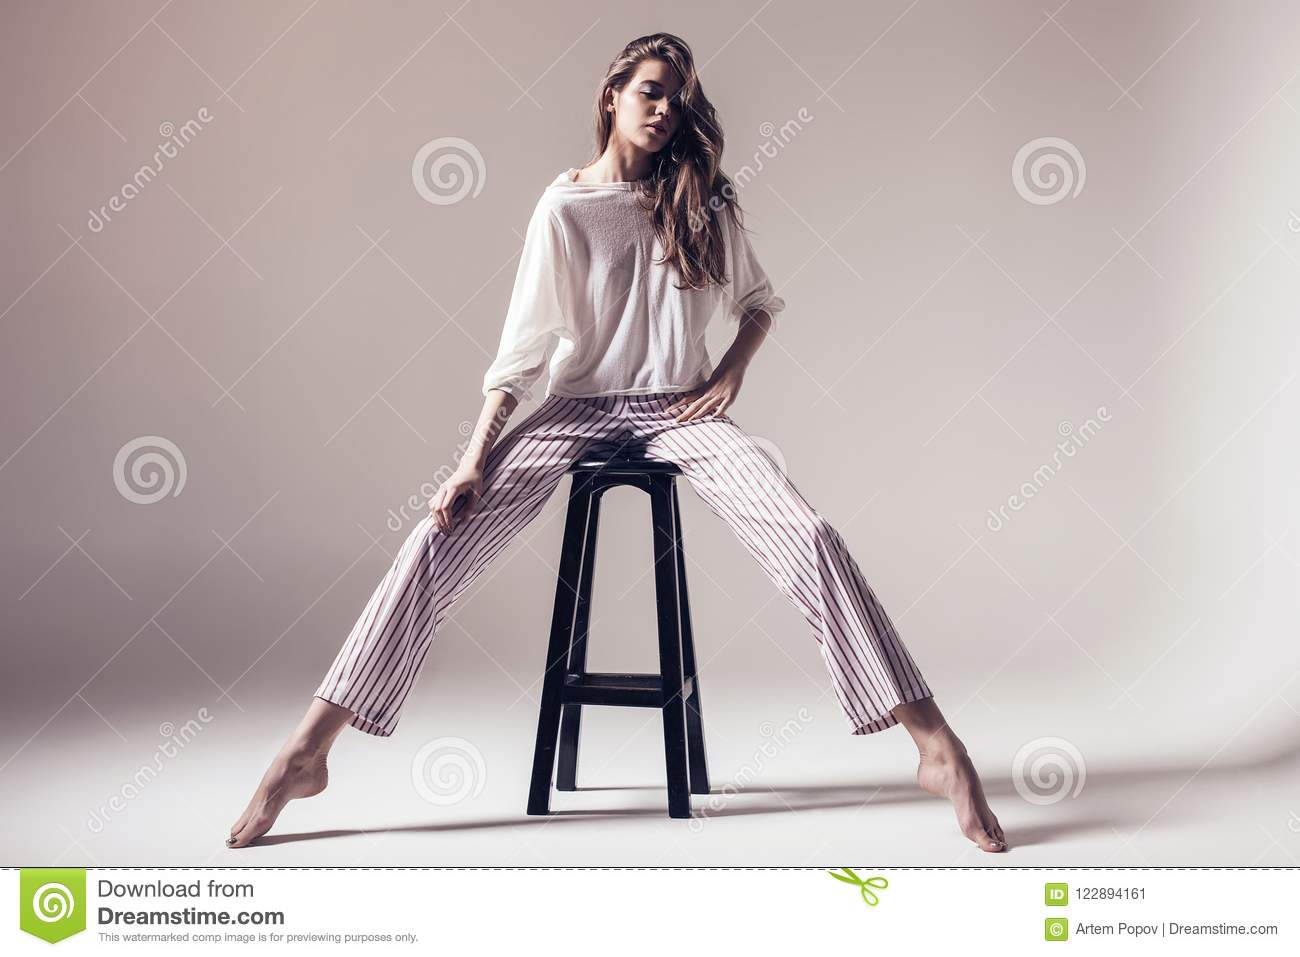 Chair Pants Model In Striped Pants And White Top Sitting On Chair Stock Image